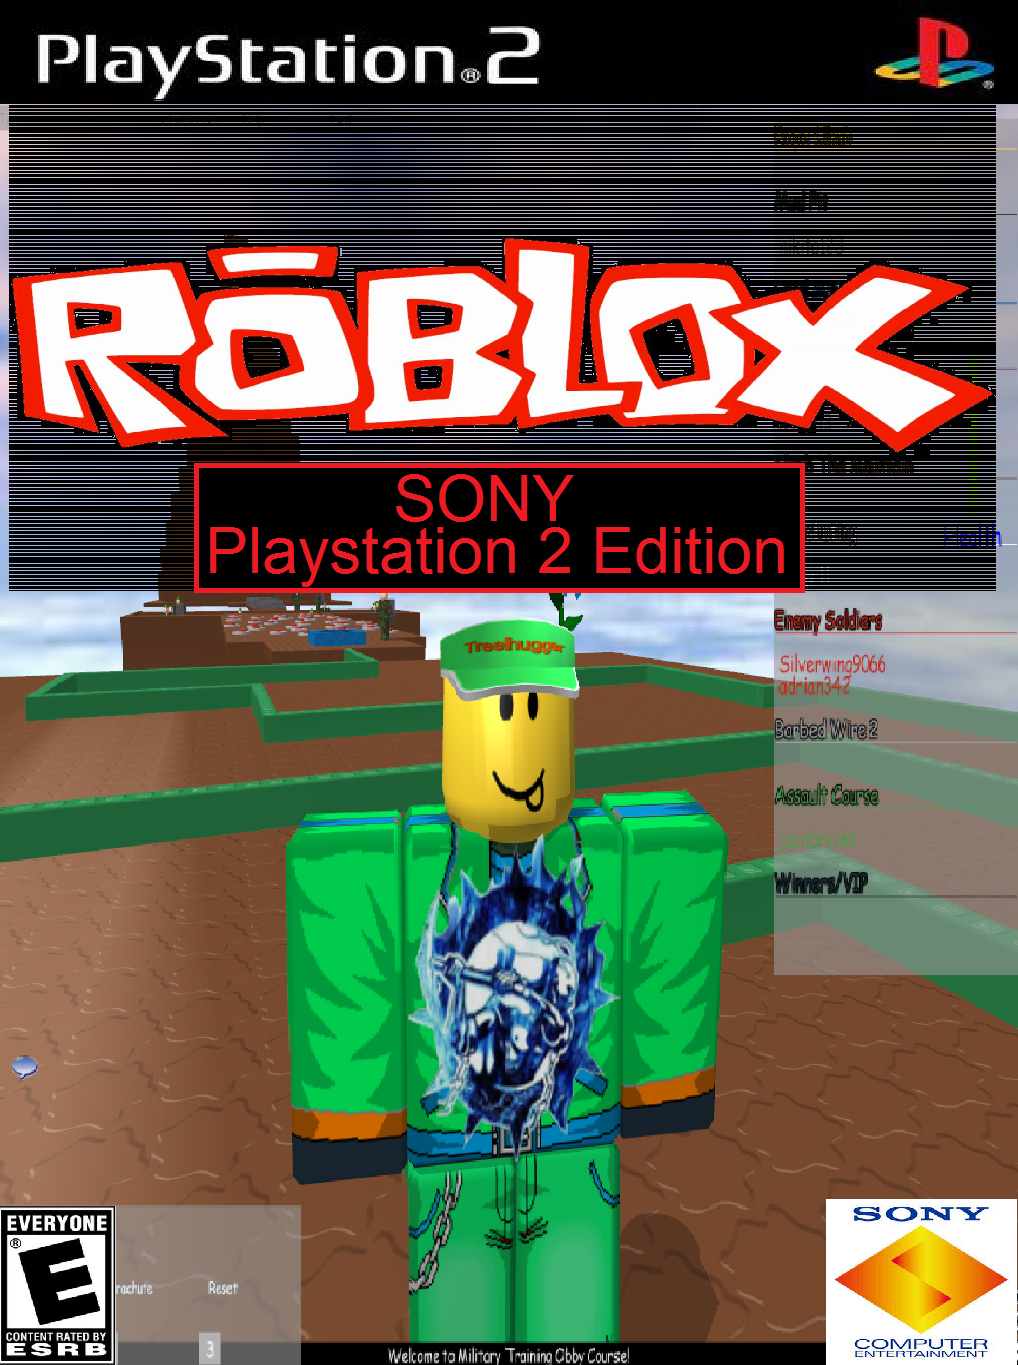 Roblox - Sony Playstation 2 Edition by djshby on DeviantArt